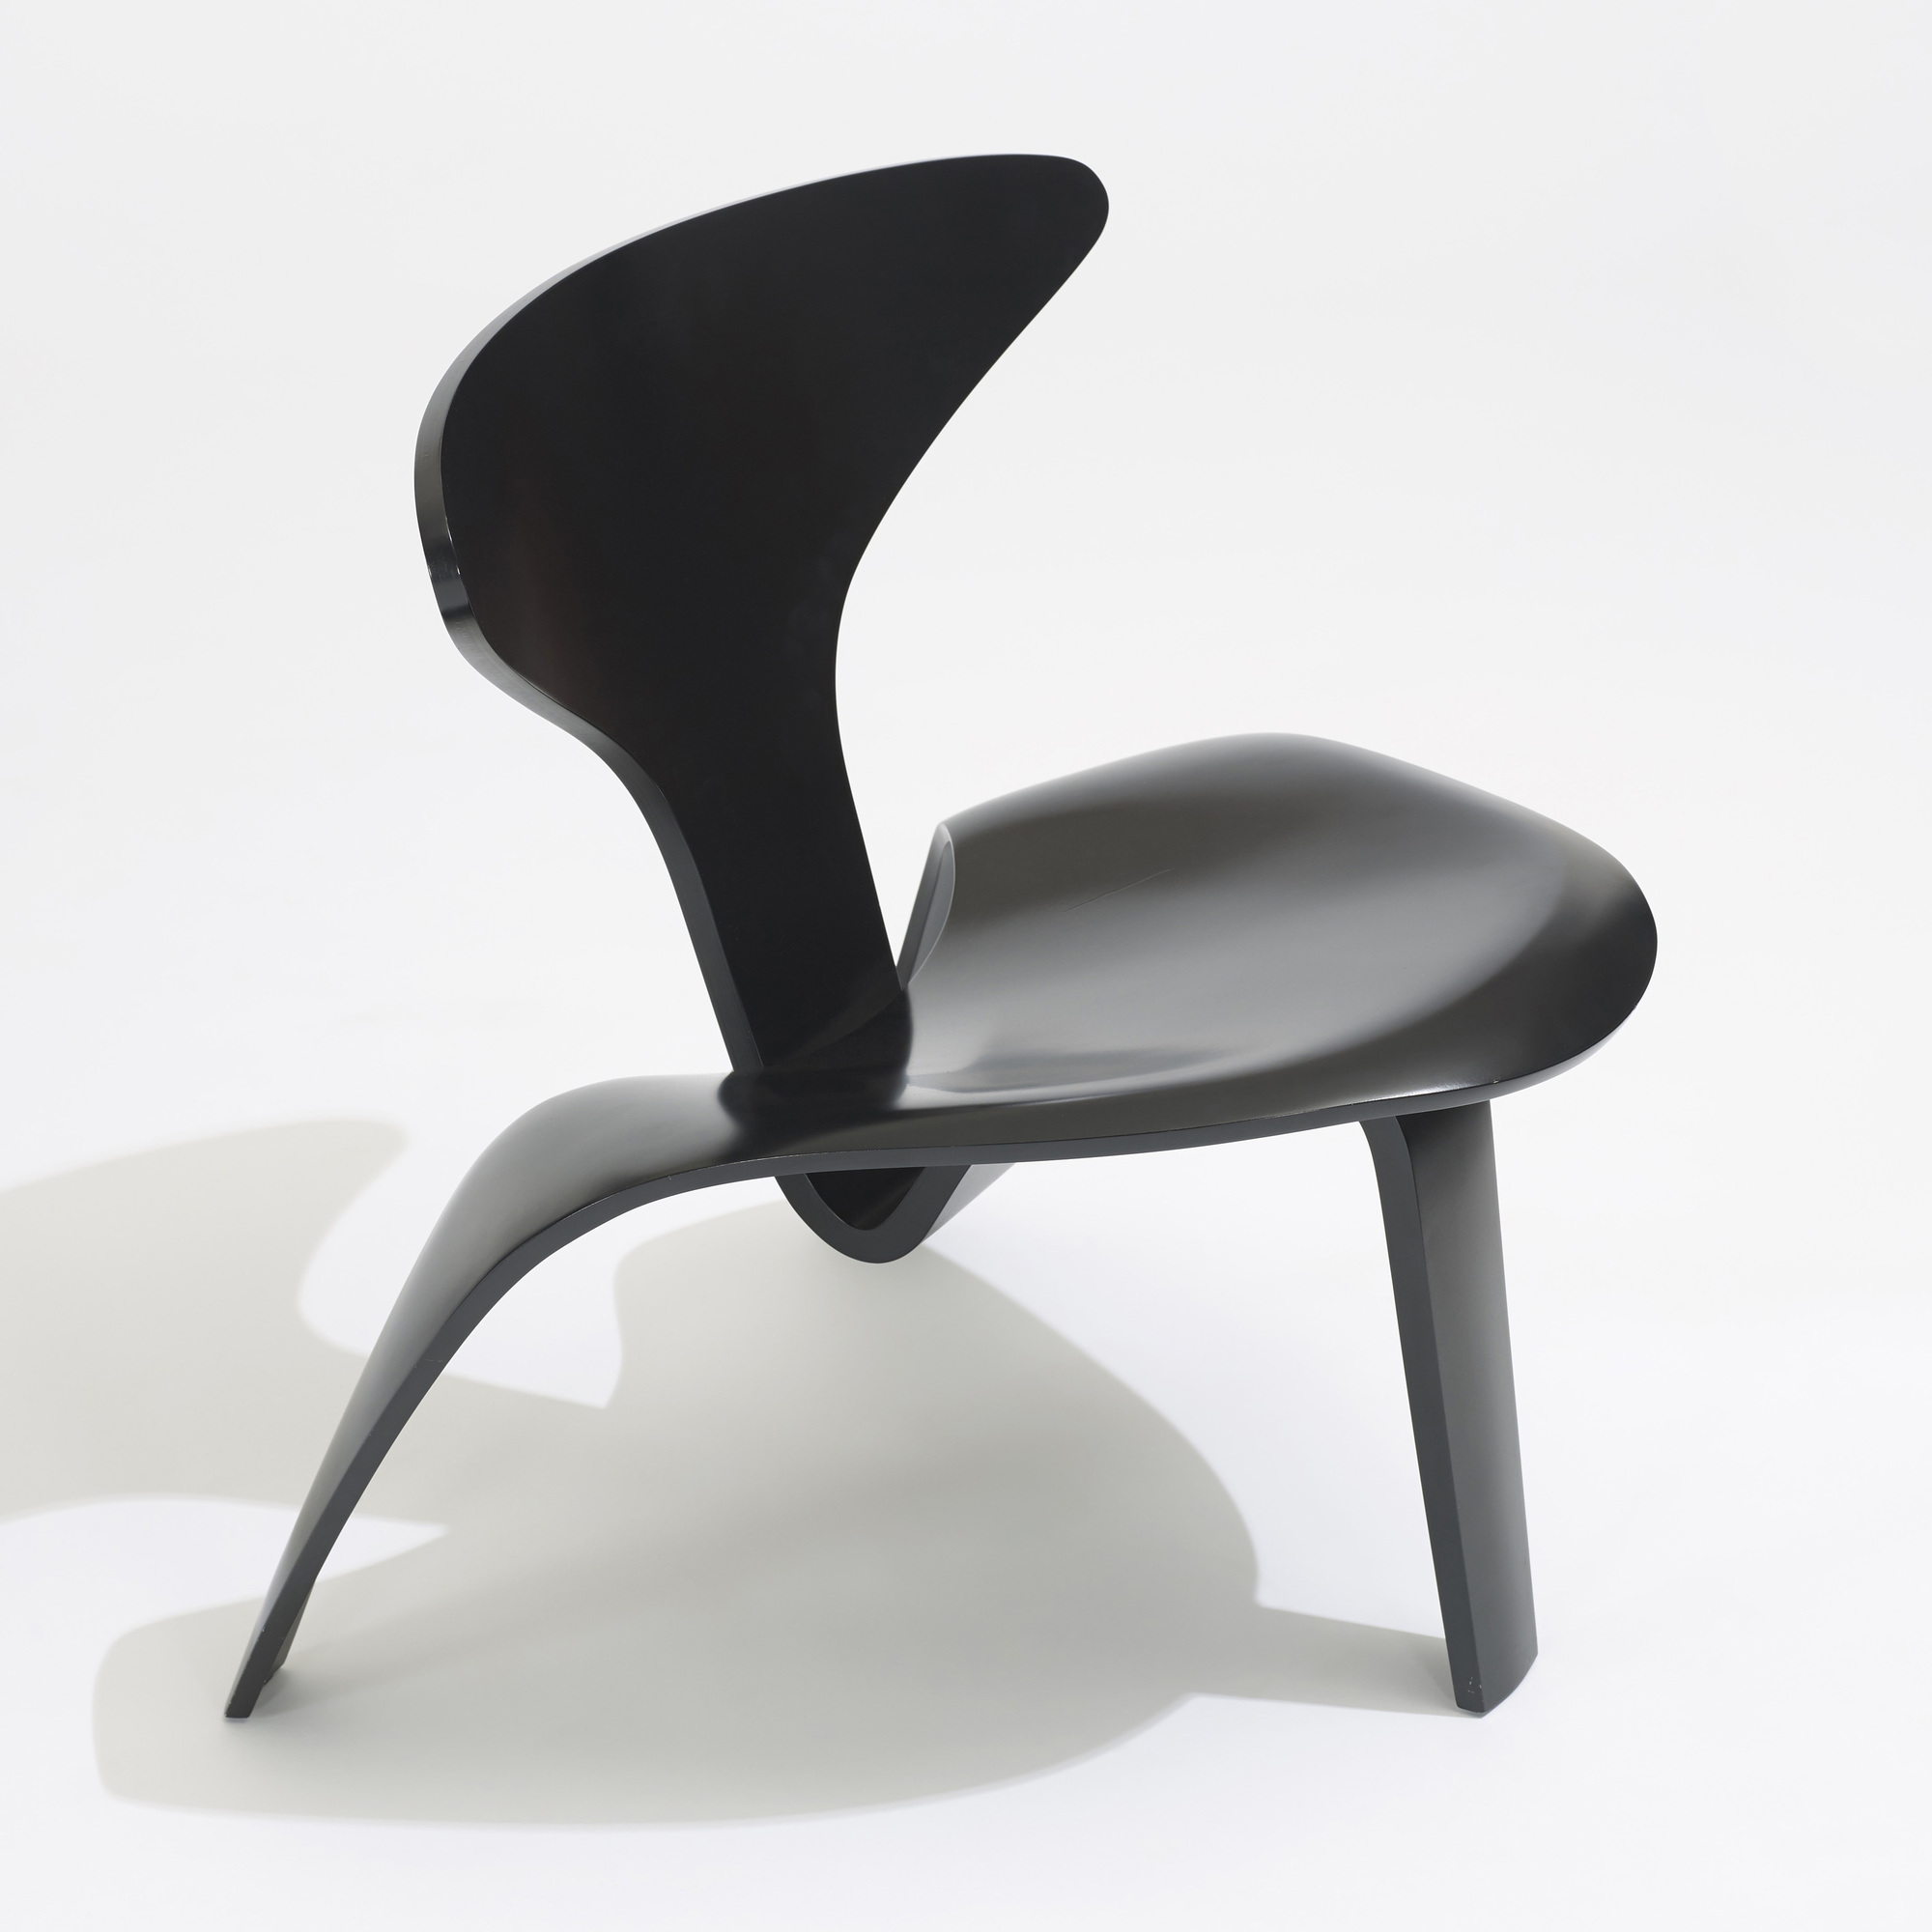 171: Poul Kjaerholm / PK 0 lounge chair (2 of 3)